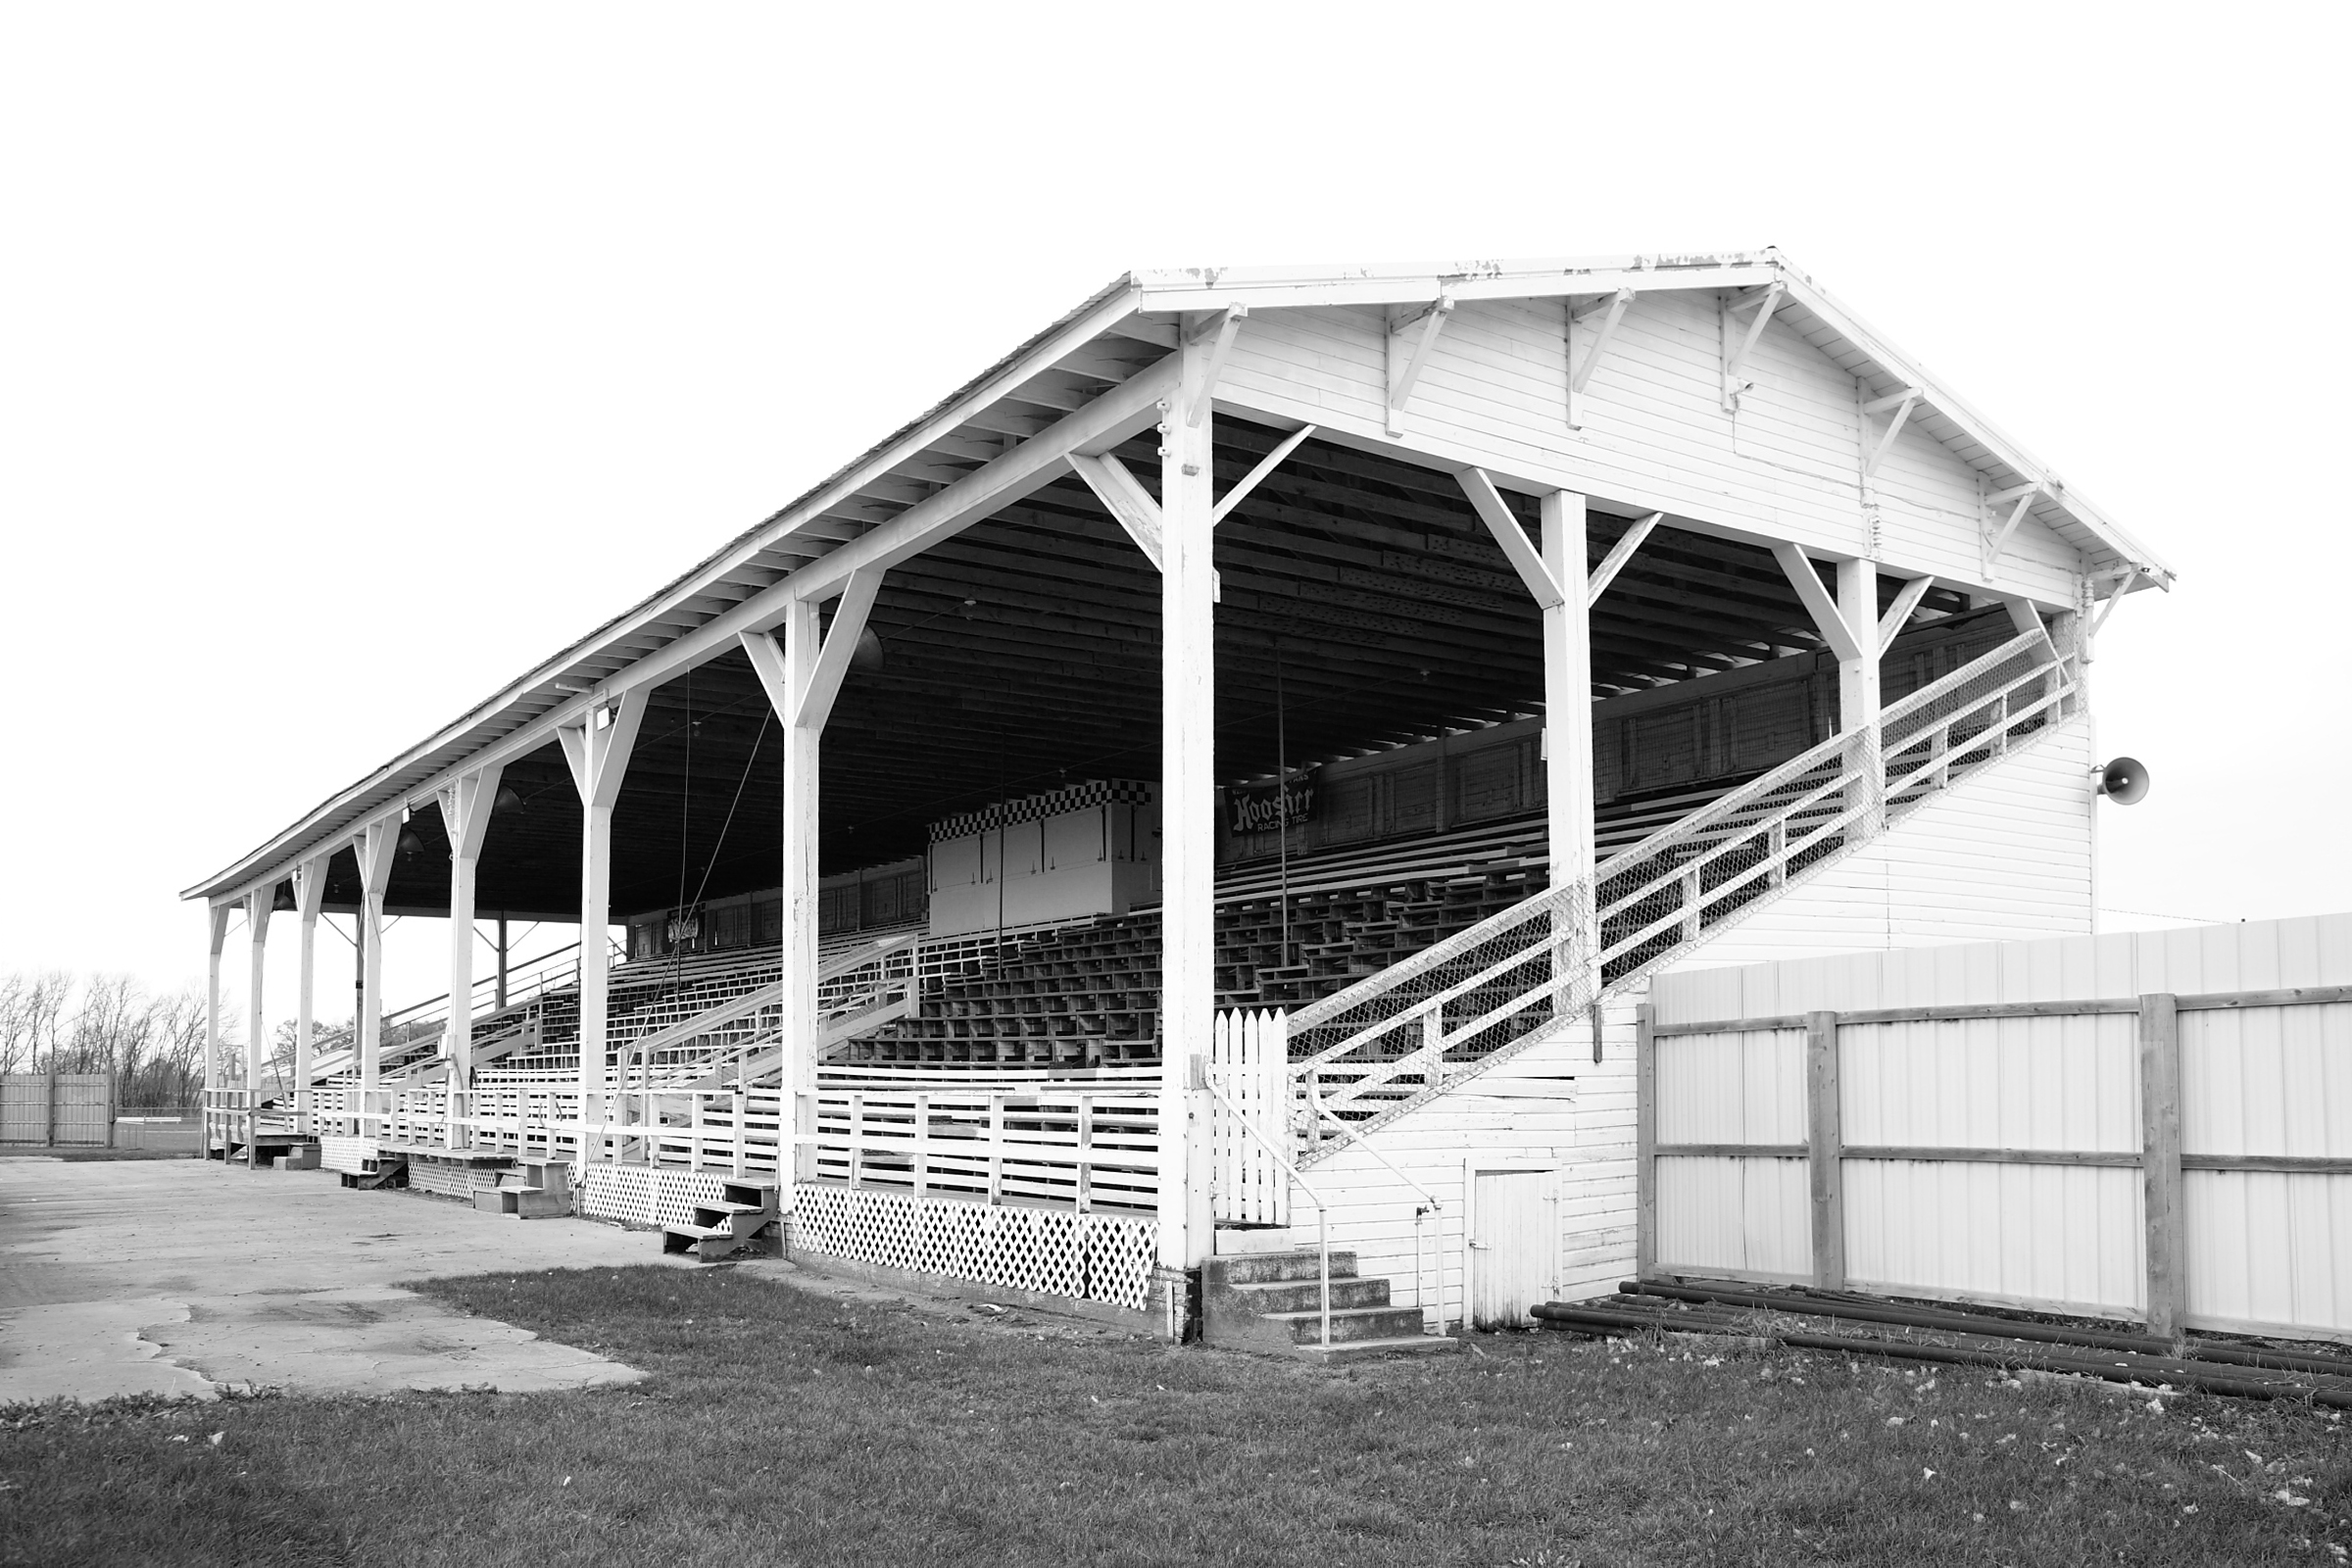 Norman Co Fairgrounds Grandstand (Please credit Daniel R. Pratt)